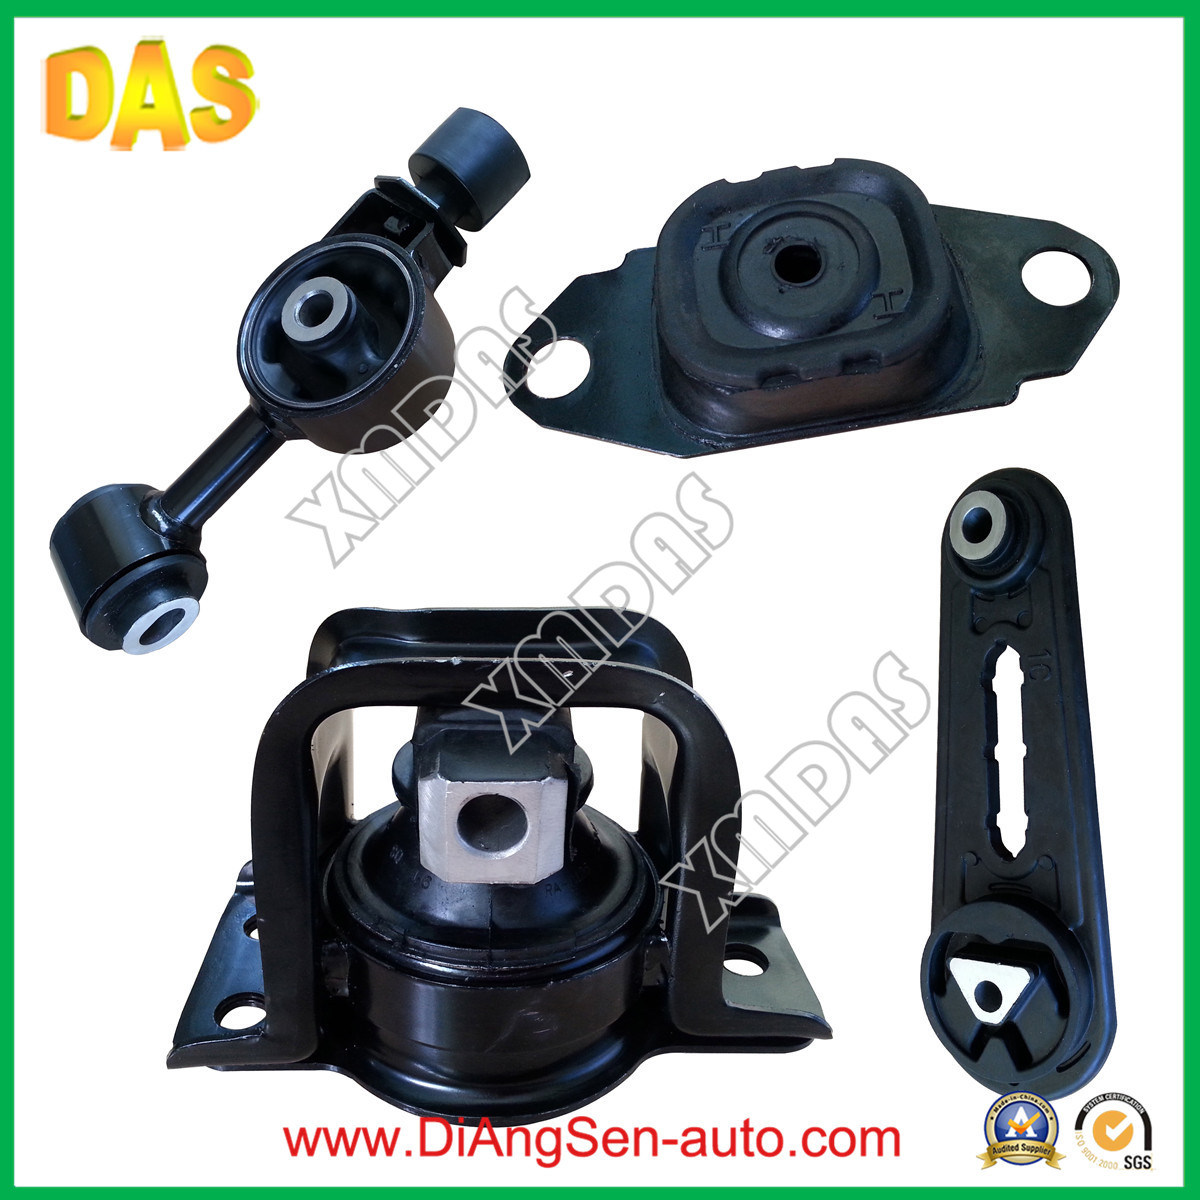 Repair Auto Parts- Engine Rubber Mounting for Nissan Versa 2007-2011 (11210-ED800, 11220-ED50A, 11350-EL00A, 11360-ED000)